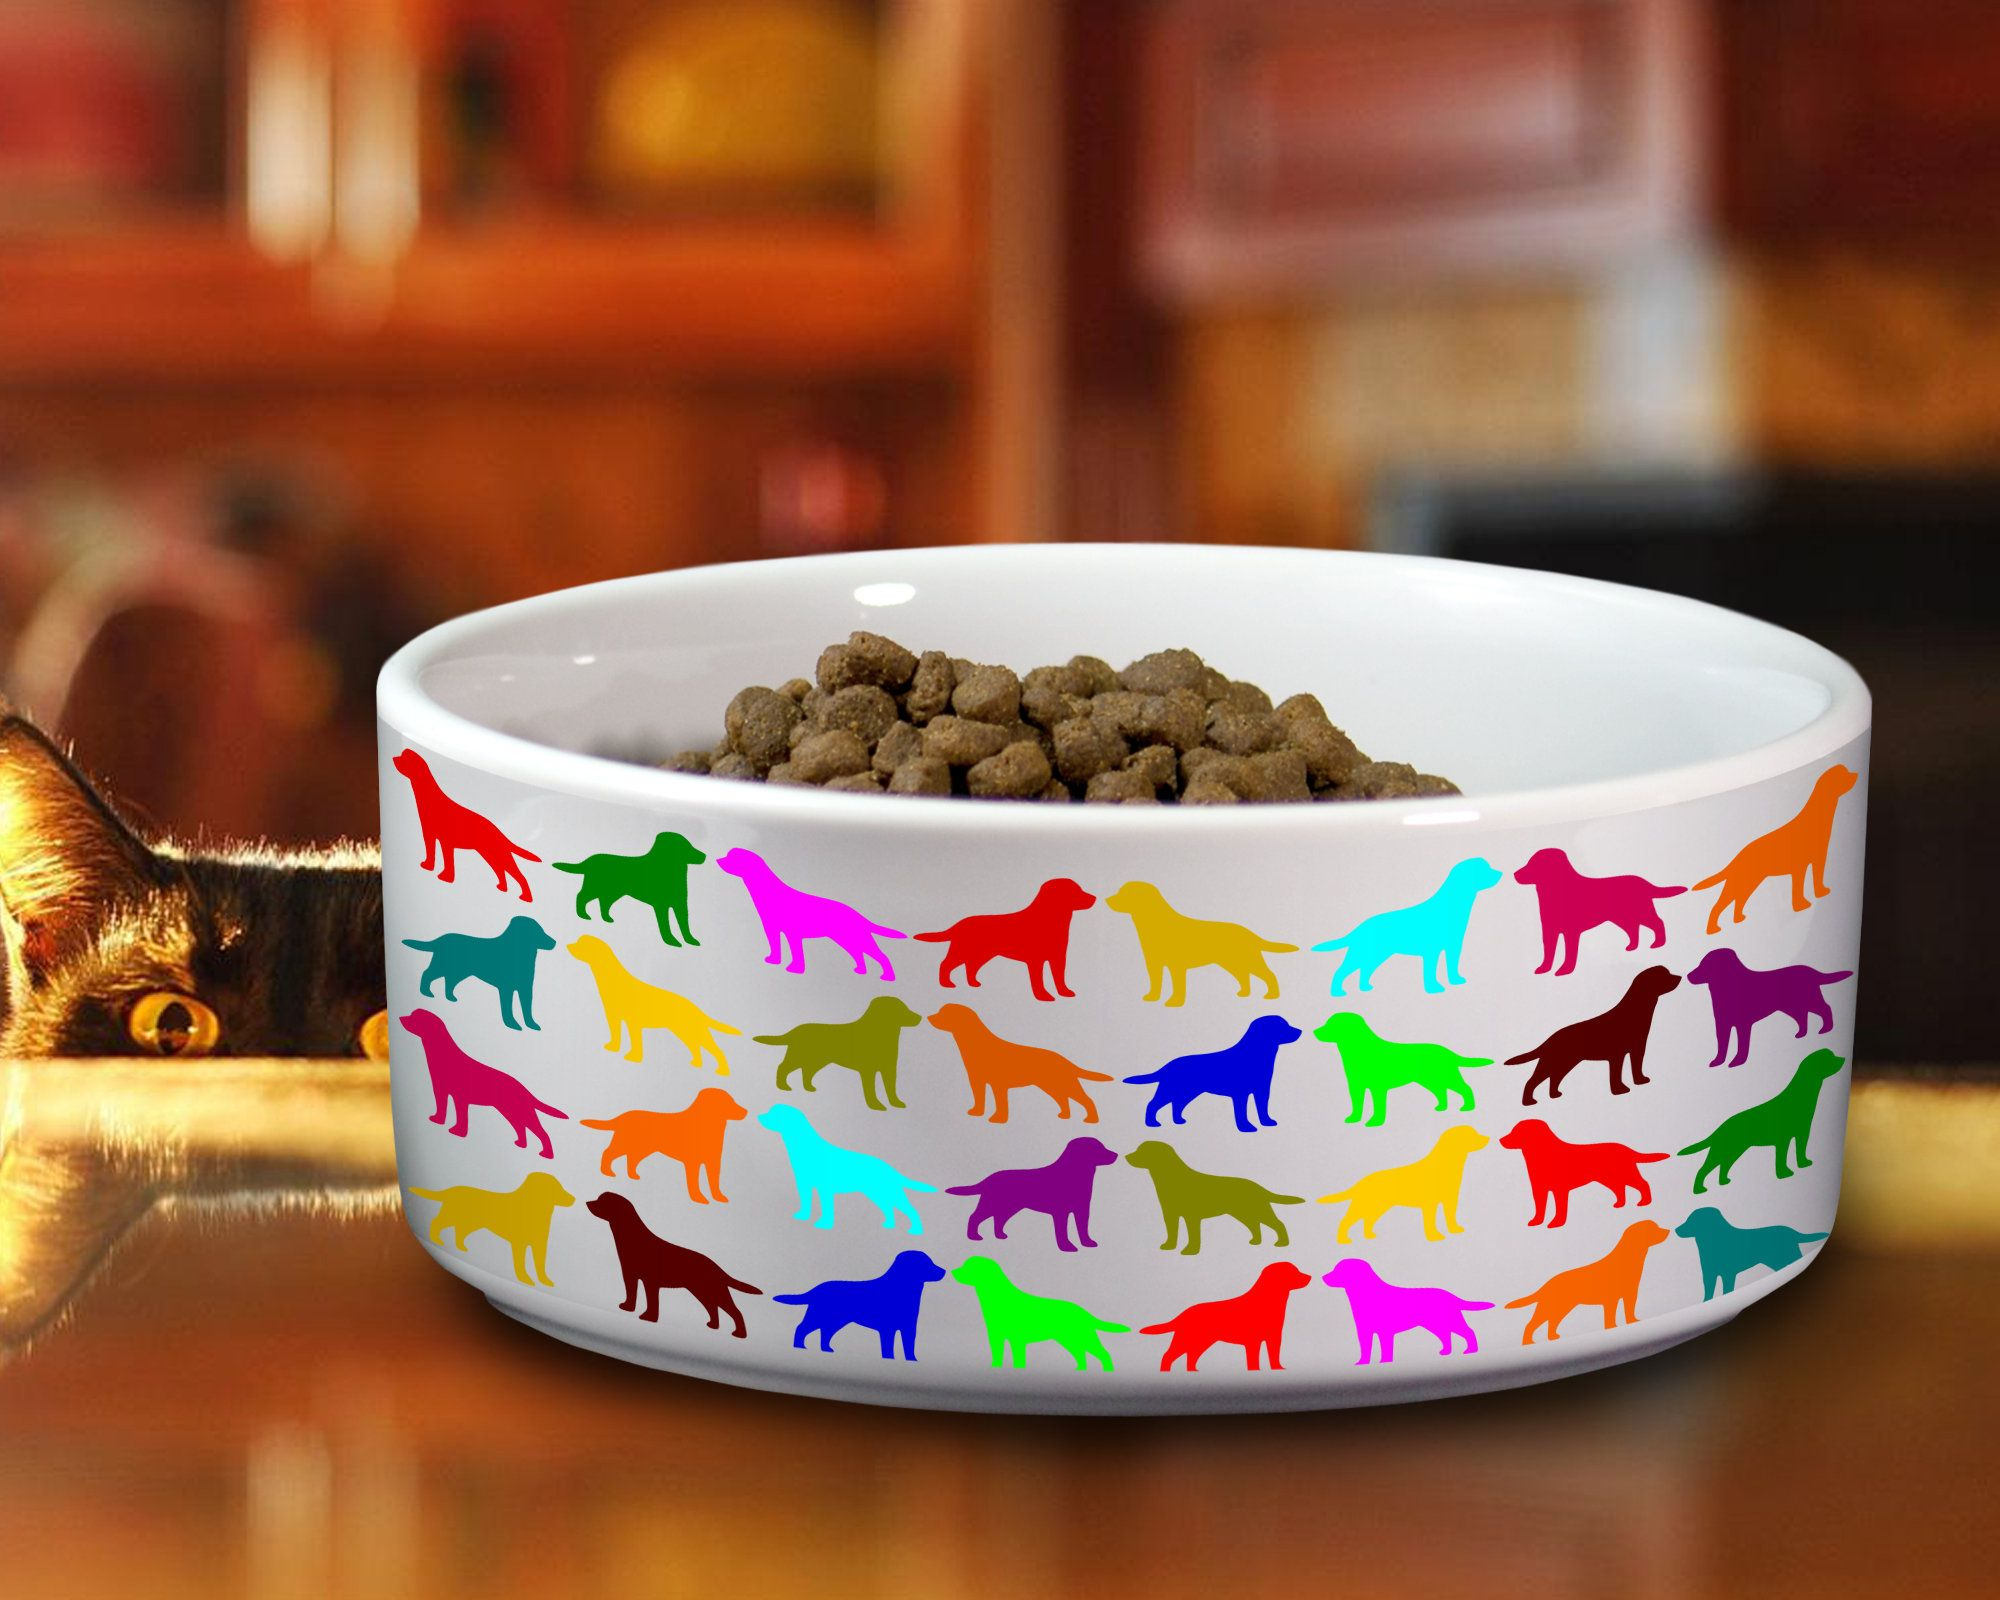 Labrador Lab Ceramic Bowl for Dog, Colorful Watercolor Pet